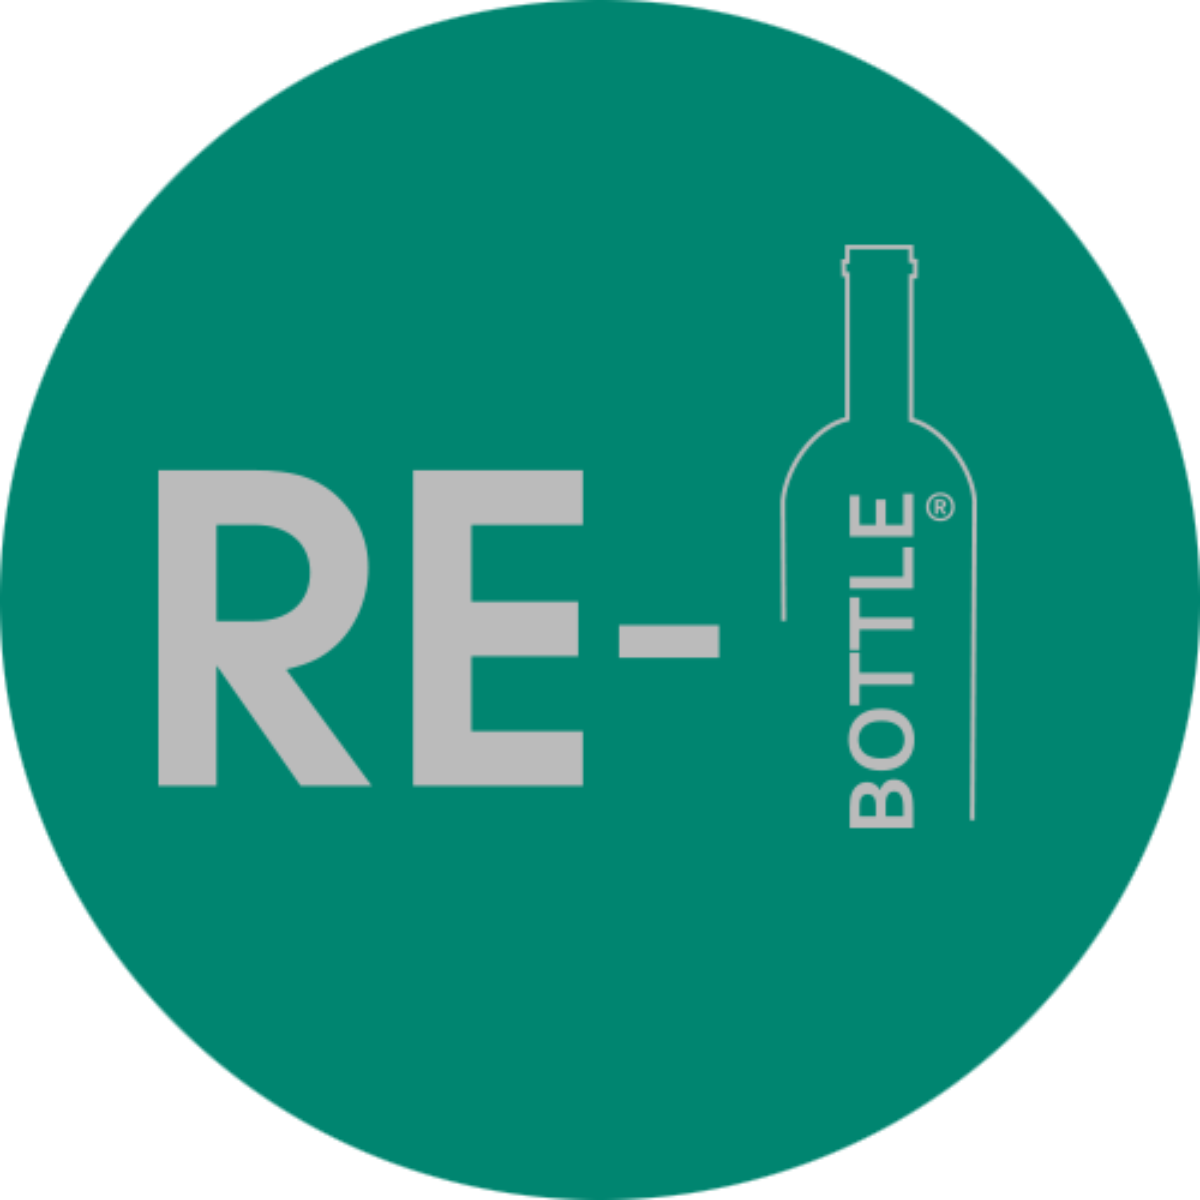 Reacondicionamiento con cambio de botella : Re-Bottle®